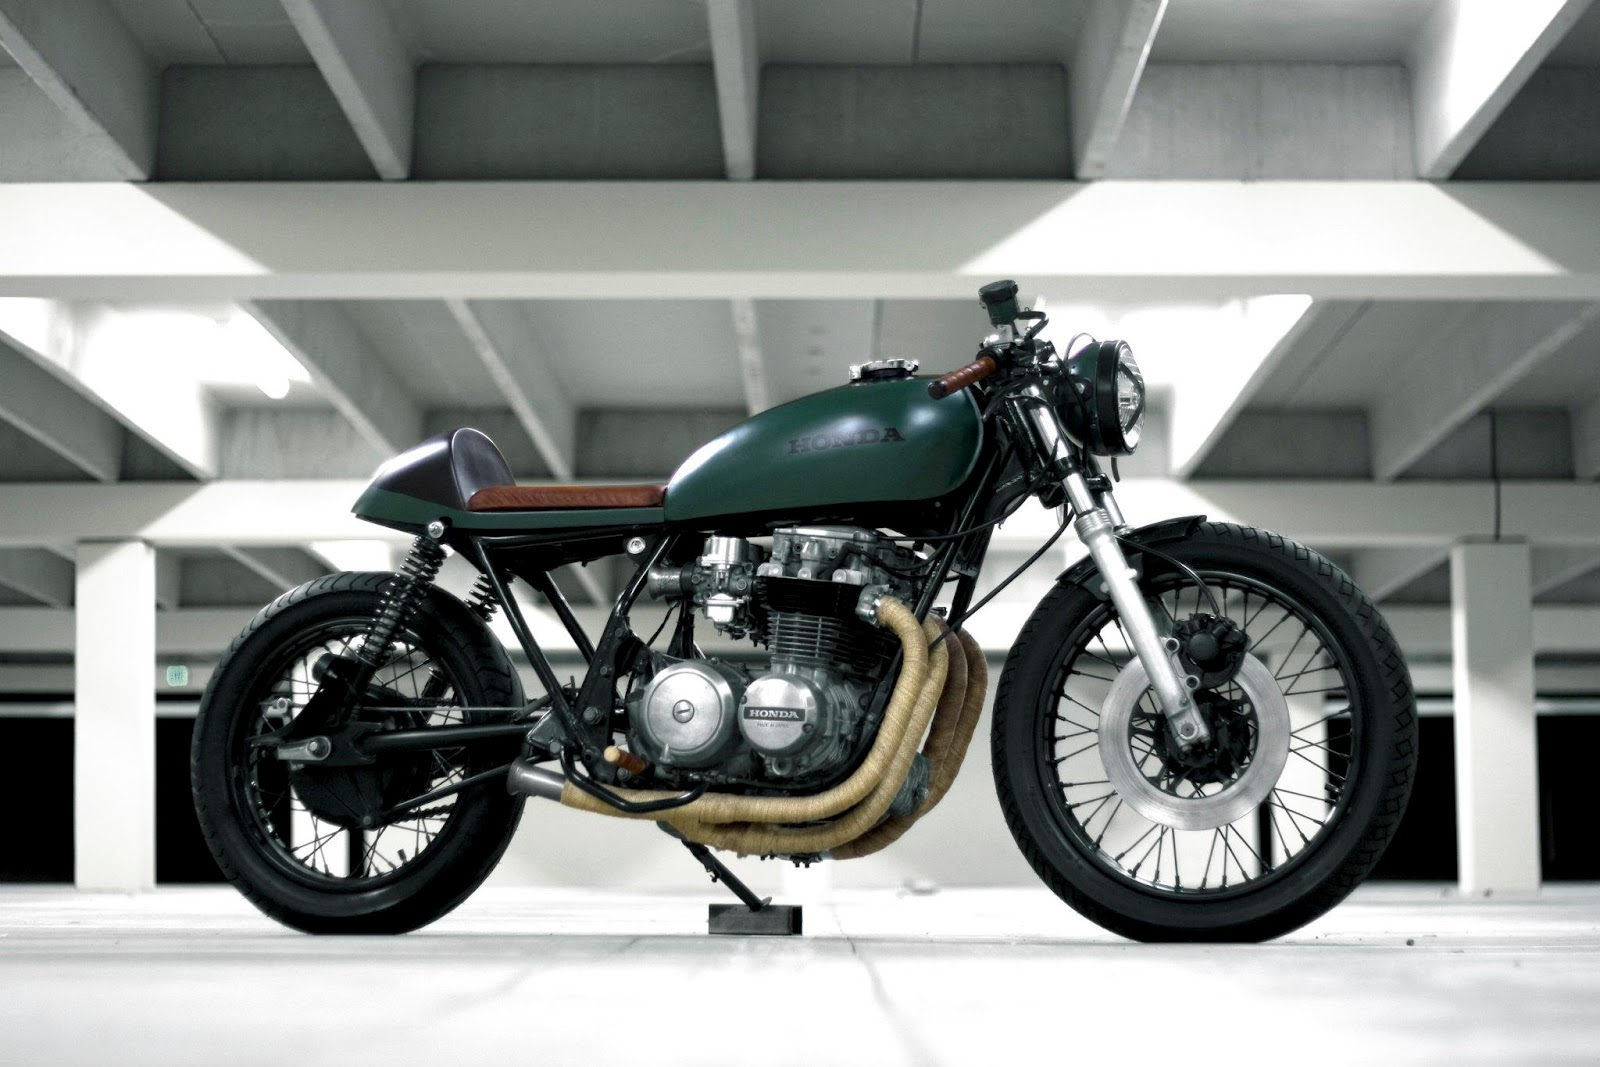 hight resolution of  decided he d rather move saw introduction sc style remained an optionthrough rest run cb650 honda cb650 service repair workshop manual 1980 onward